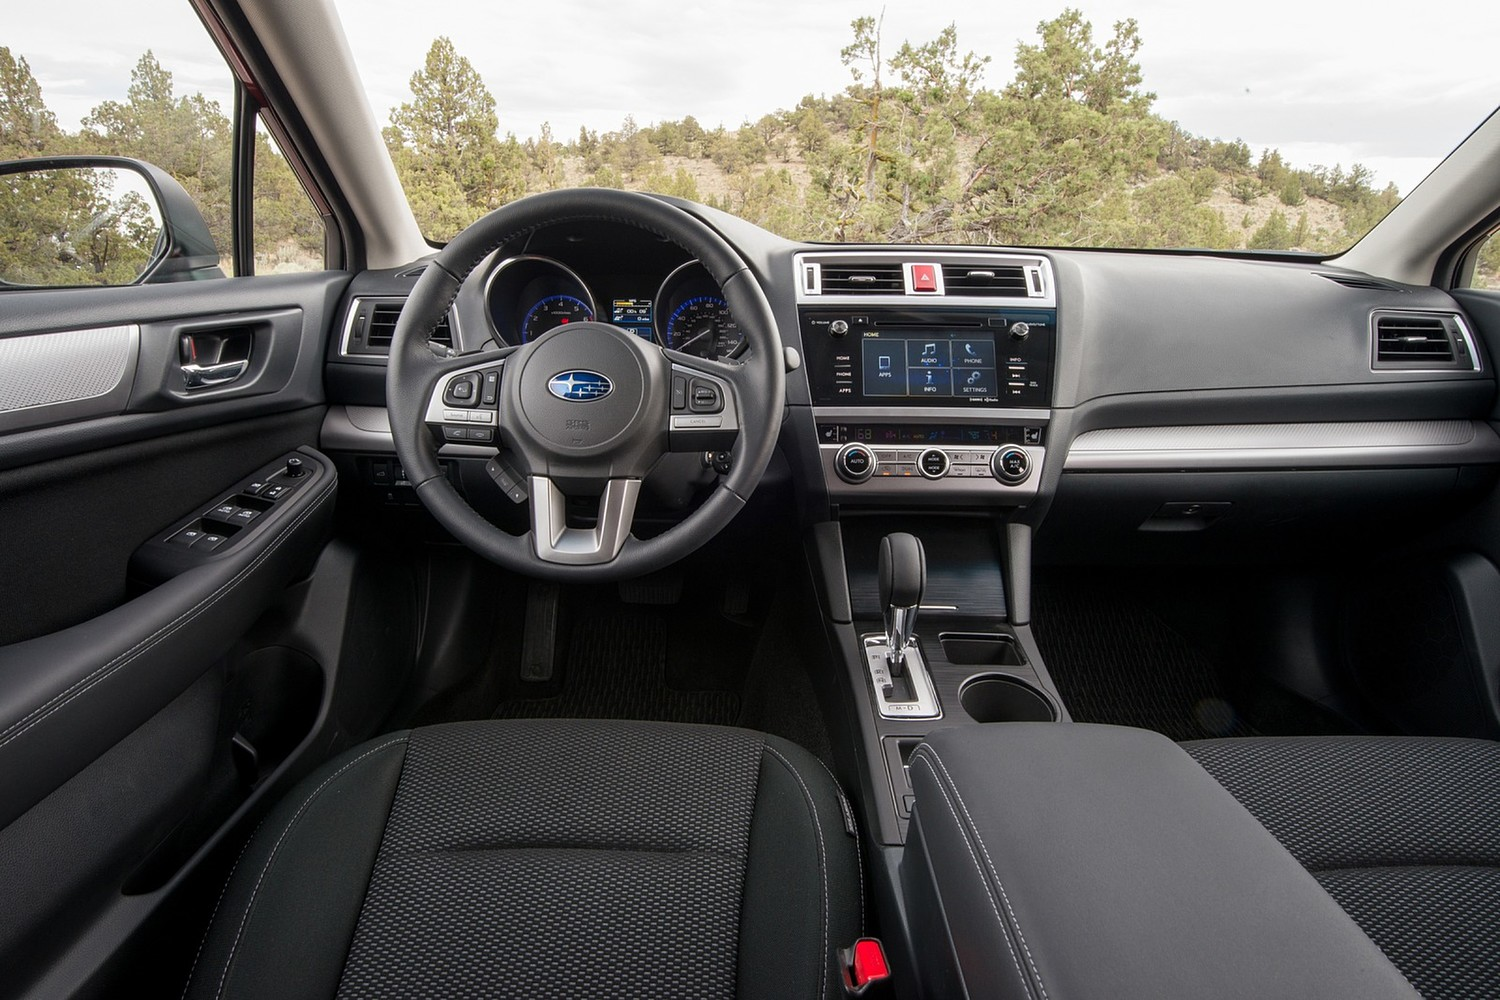 2015 Subaru Outback 3.6R Limited Wagon Dashboard